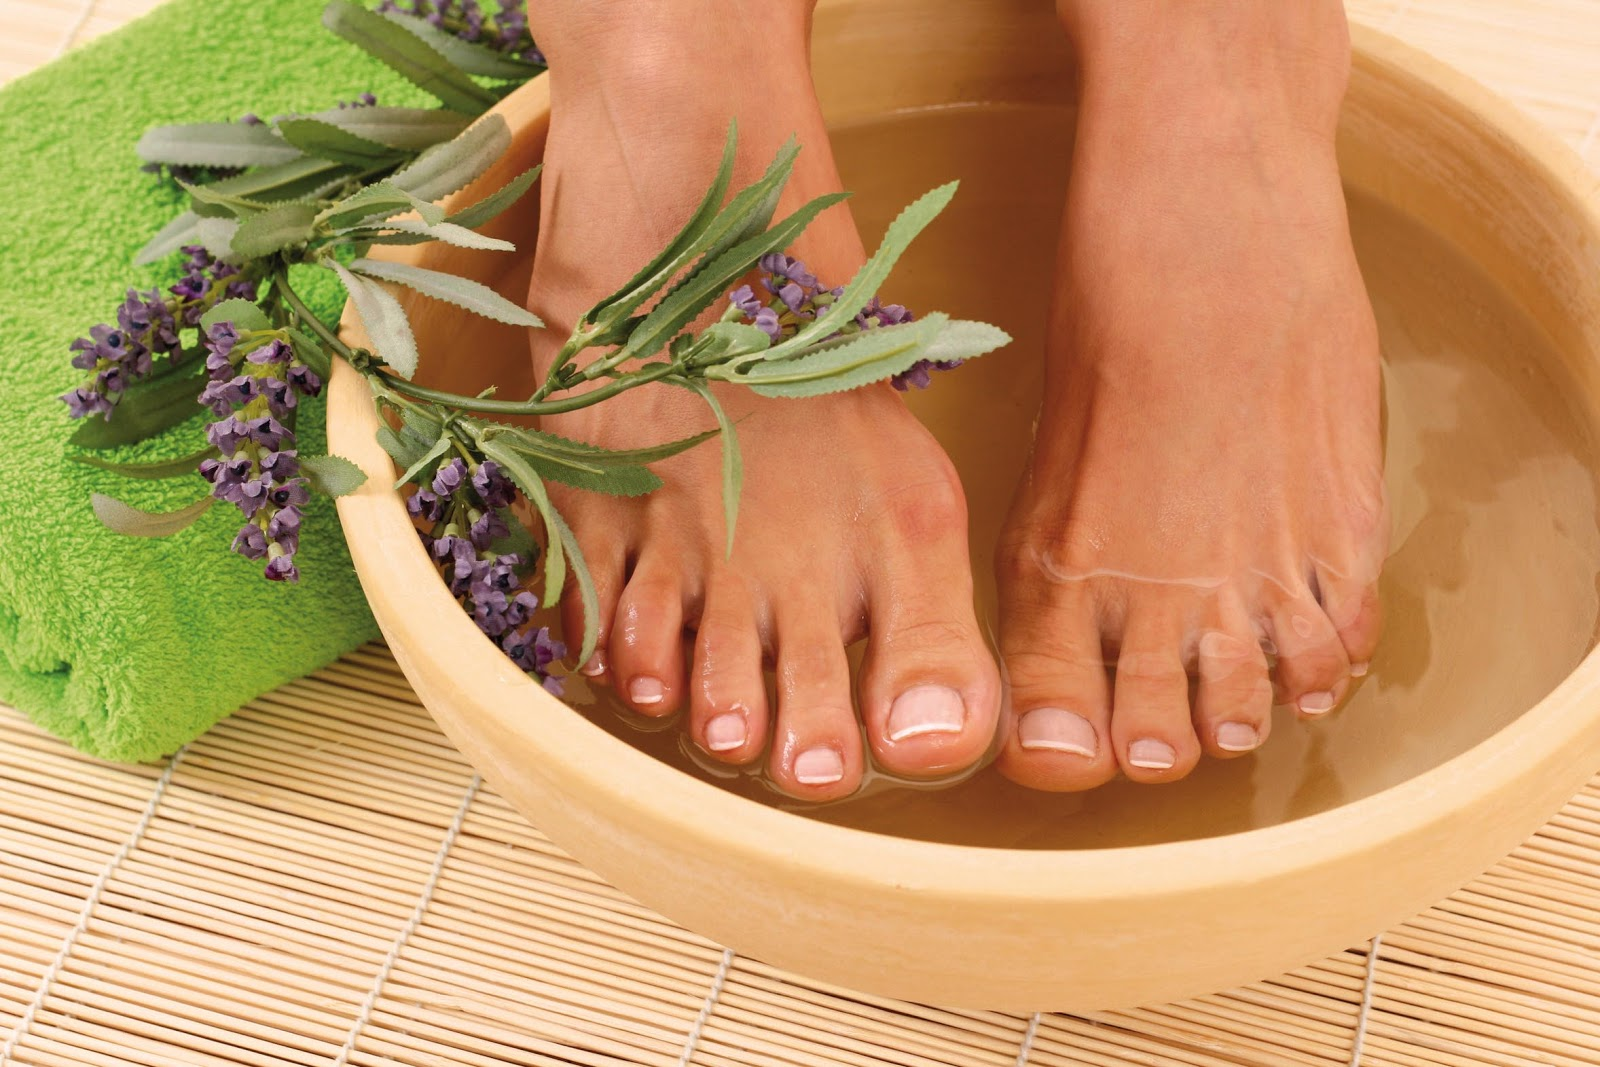 Reflexology Foot Bath